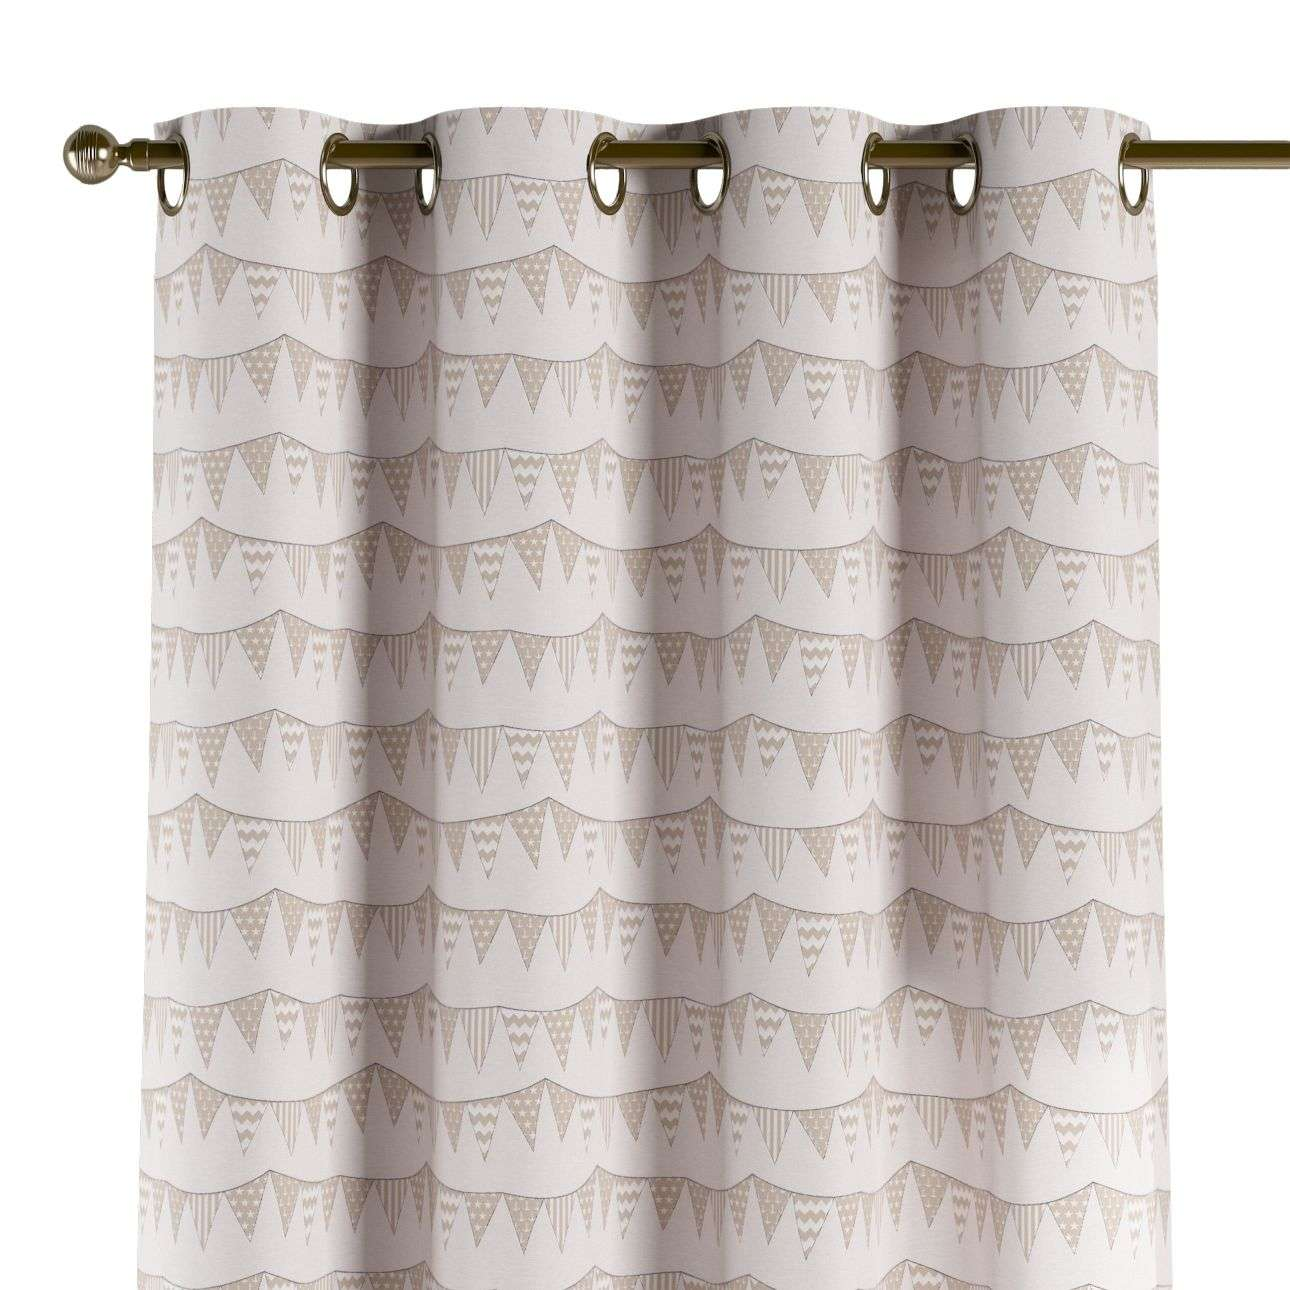 Eyelet curtains 130 x 260 cm (51 x 102 inch) in collection Marina, fabric: 140-65